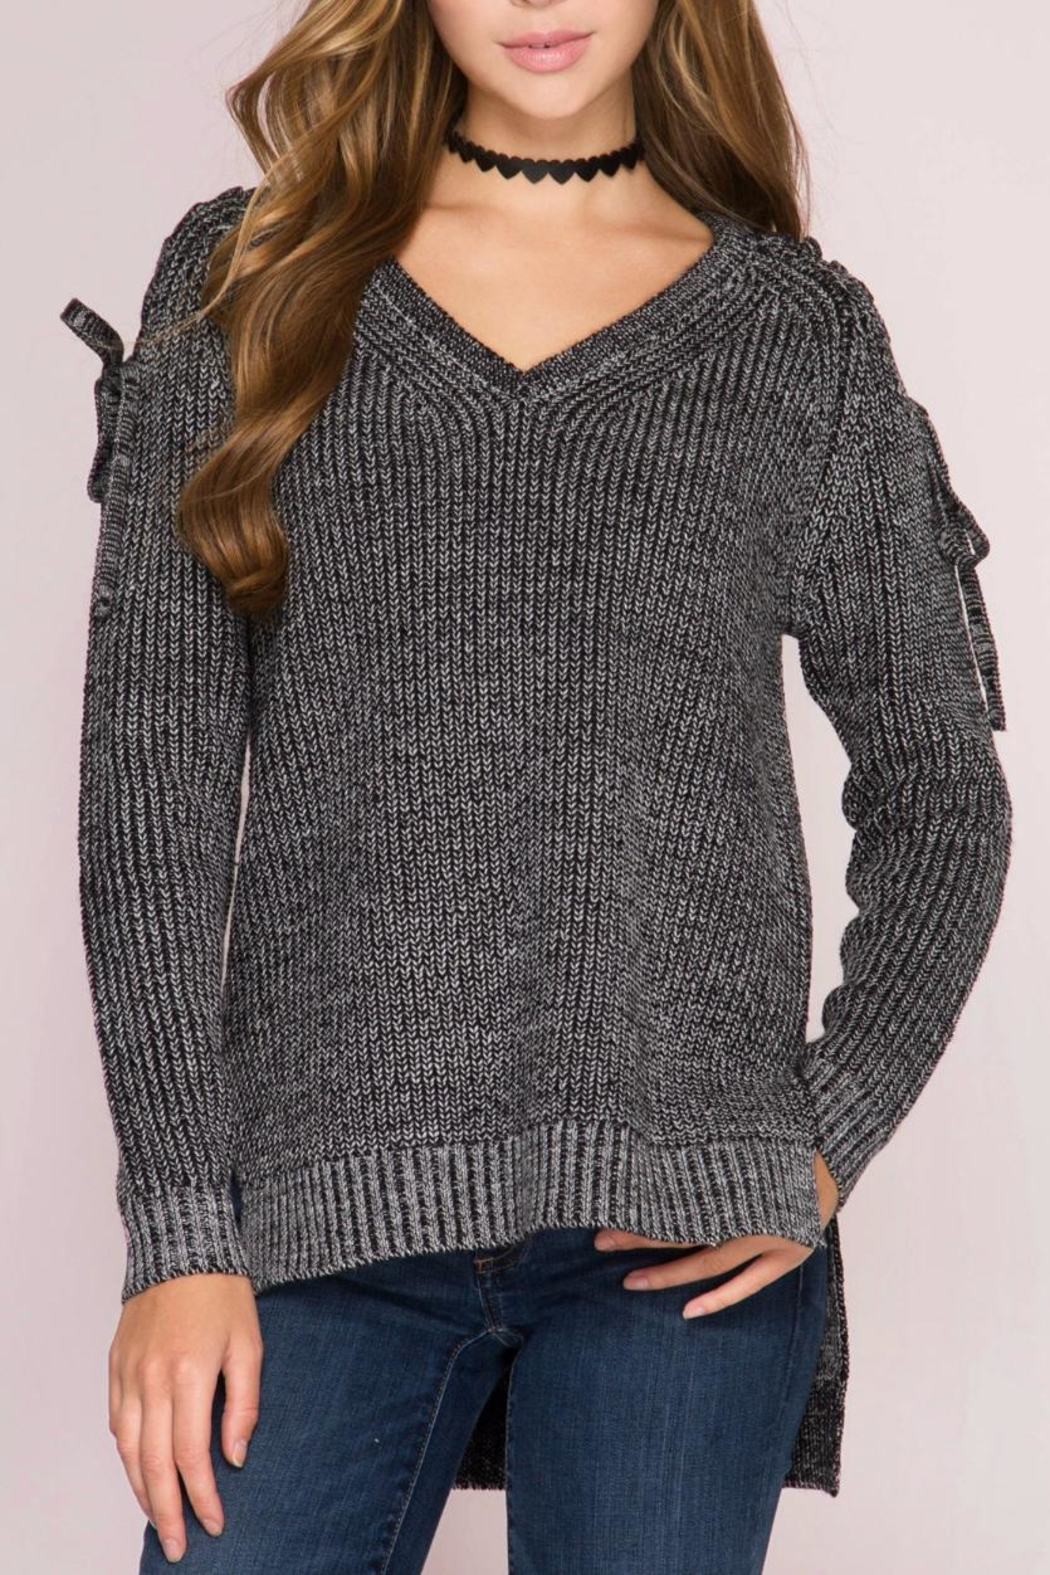 She + Sky Lace Shoulder Sweater - Main Image